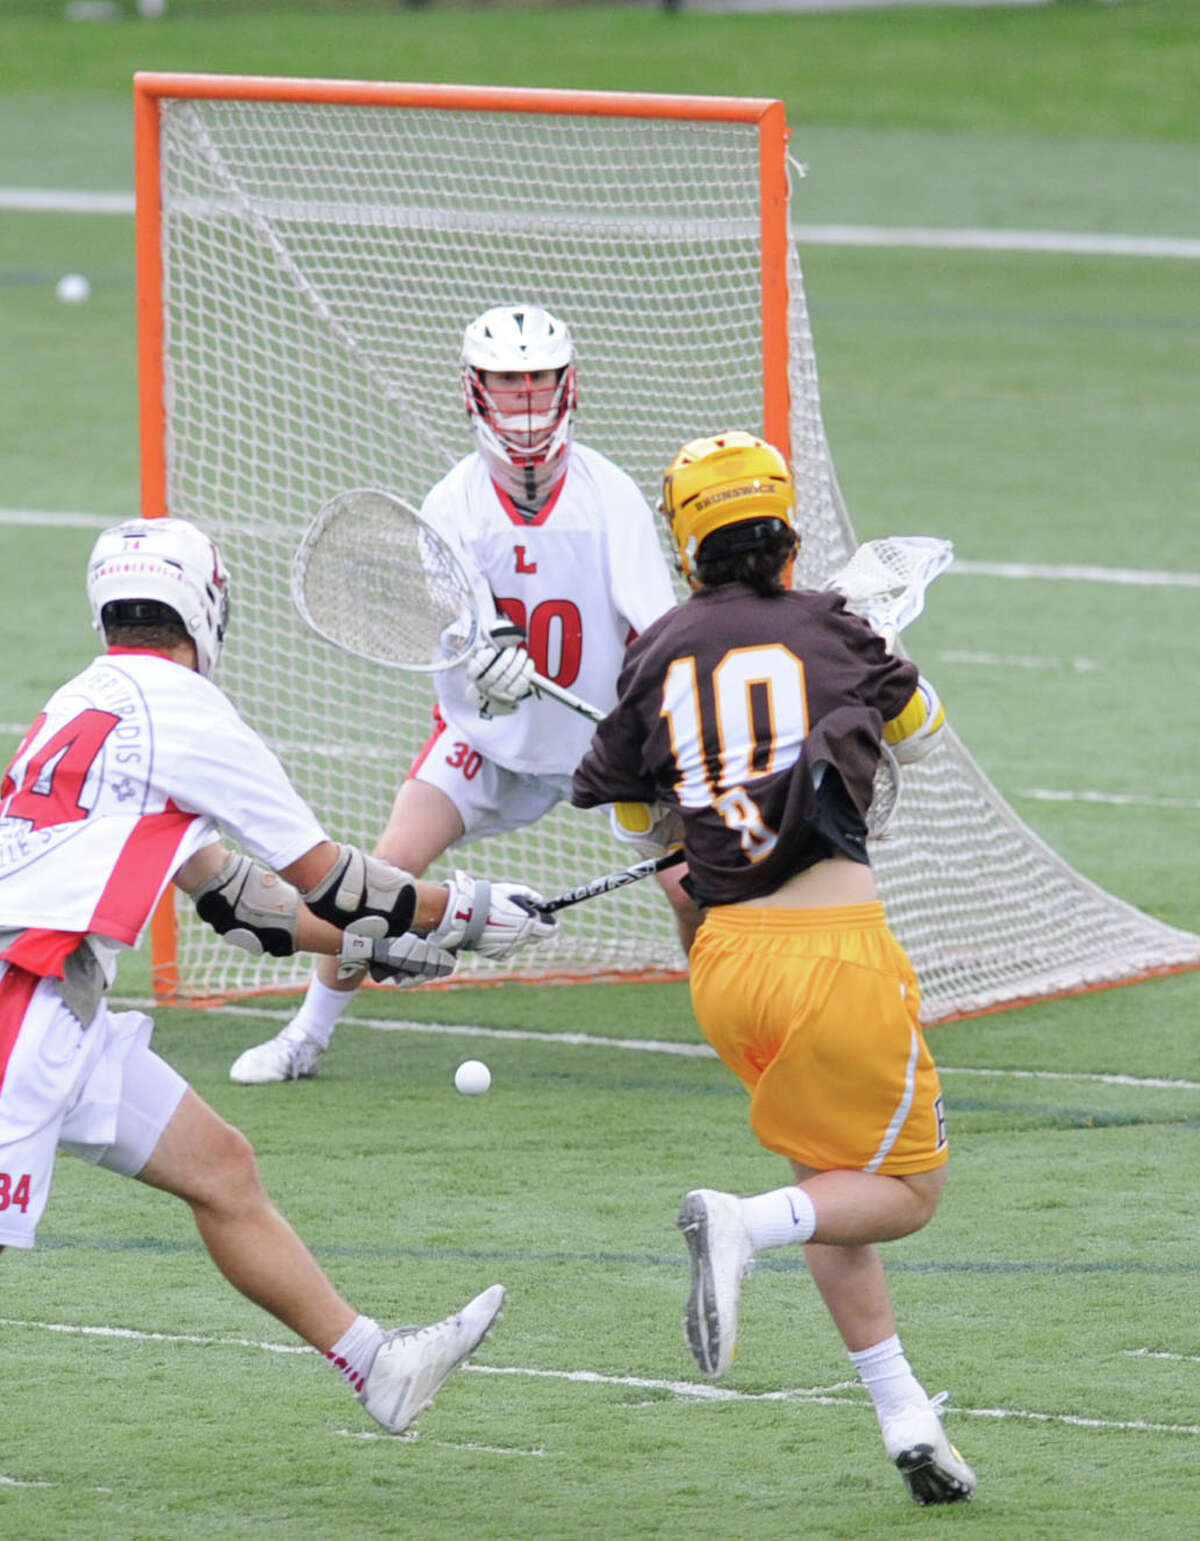 Lawrenceville goalie Miles Thompson, center, can not stop a goal by Brunswick's Sean Morris (#10) during the boys high school lacrosse match between Brunswick School and Lawrenceville School at Brunswick in Greenwich, Conn., Wednesday, April 22, 2015. Brunswick won the match, 18-8.